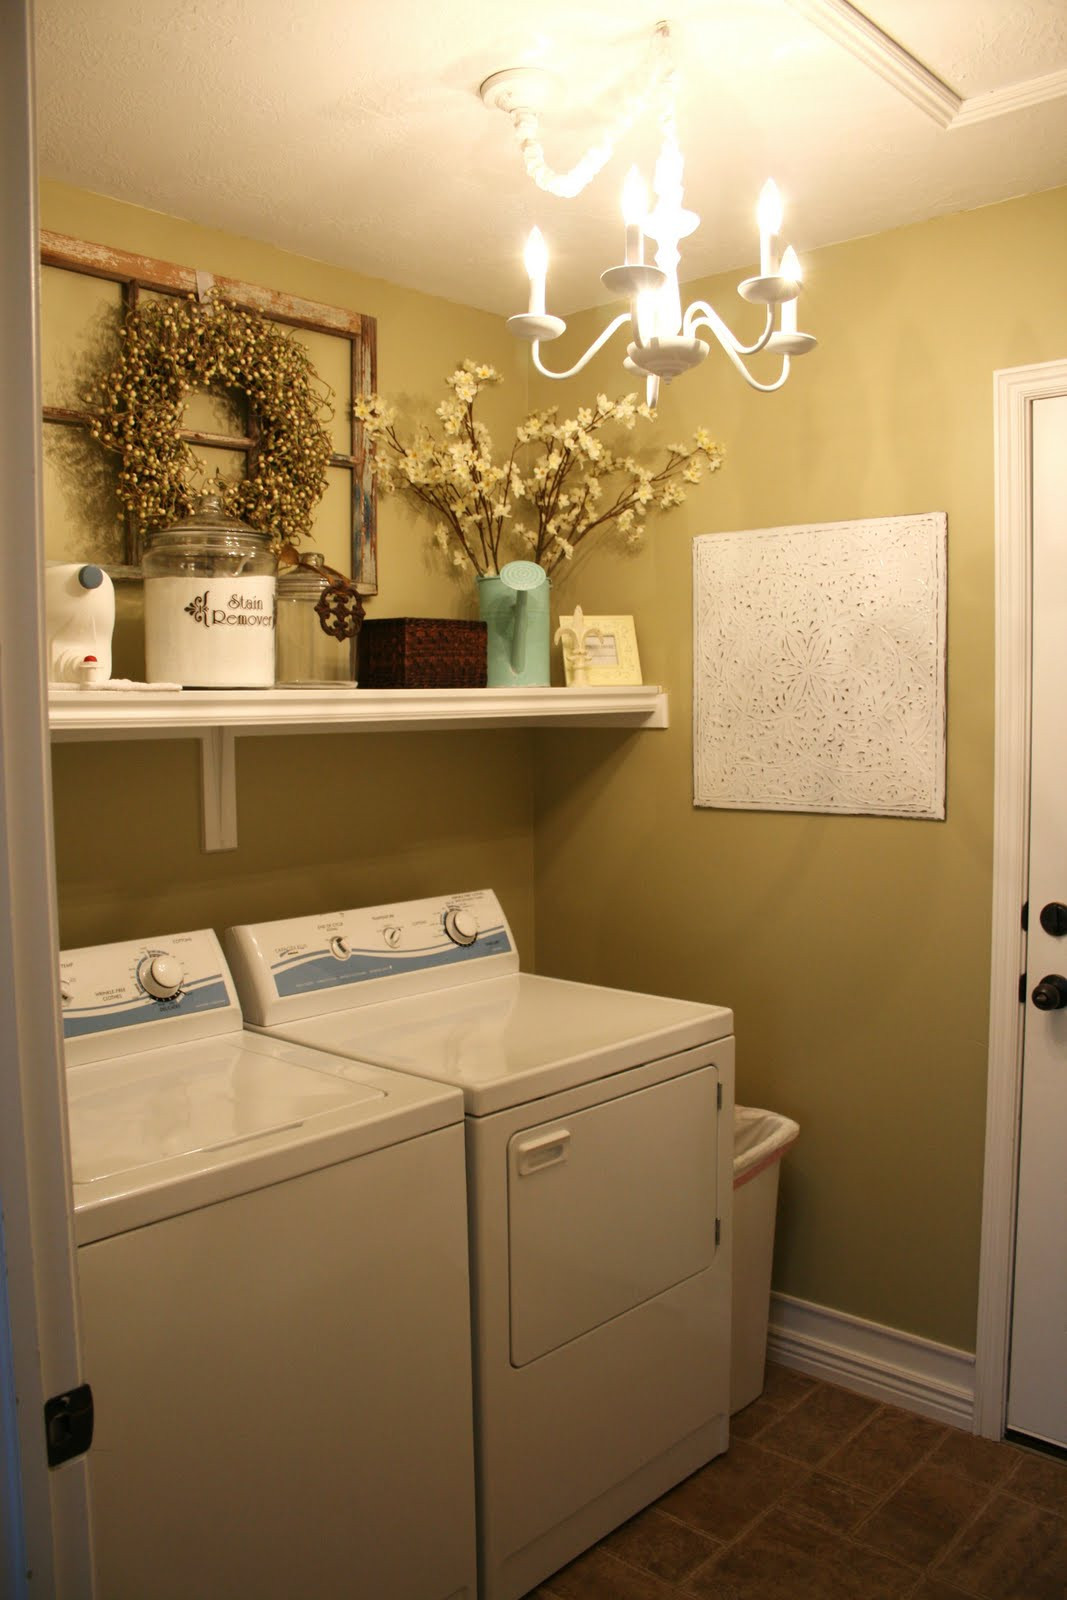 Best ideas about Laundry Room Decor Ideas . Save or Pin Sassy Sites Home Tour the laundry room Now.